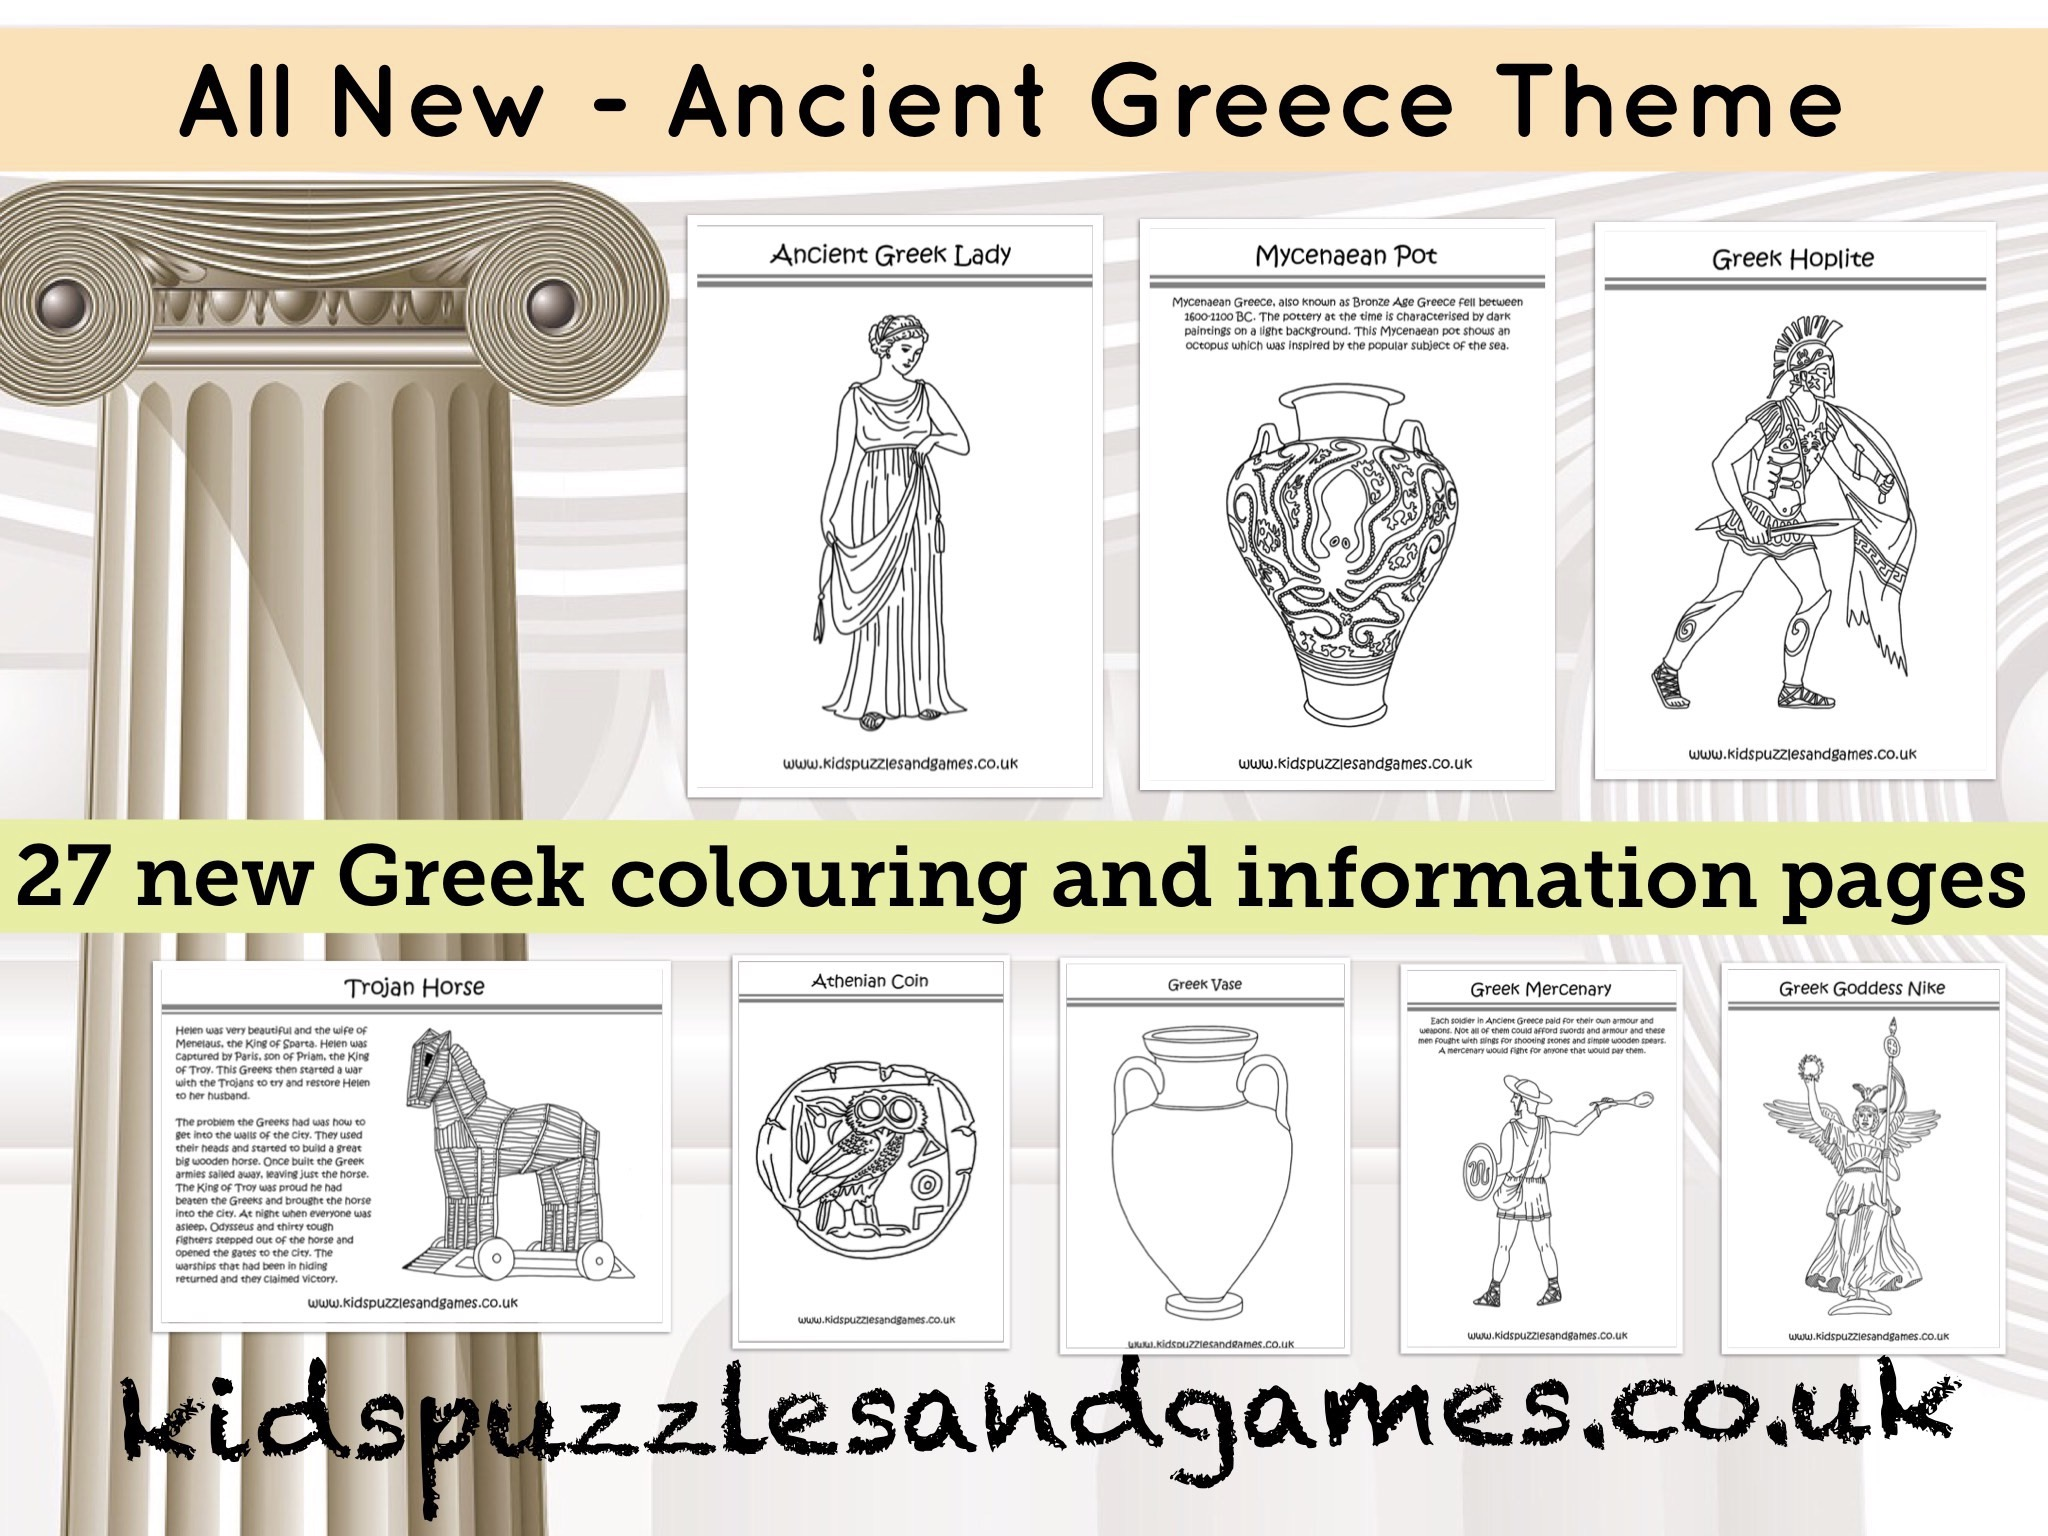 All New Ancient Greece Theme